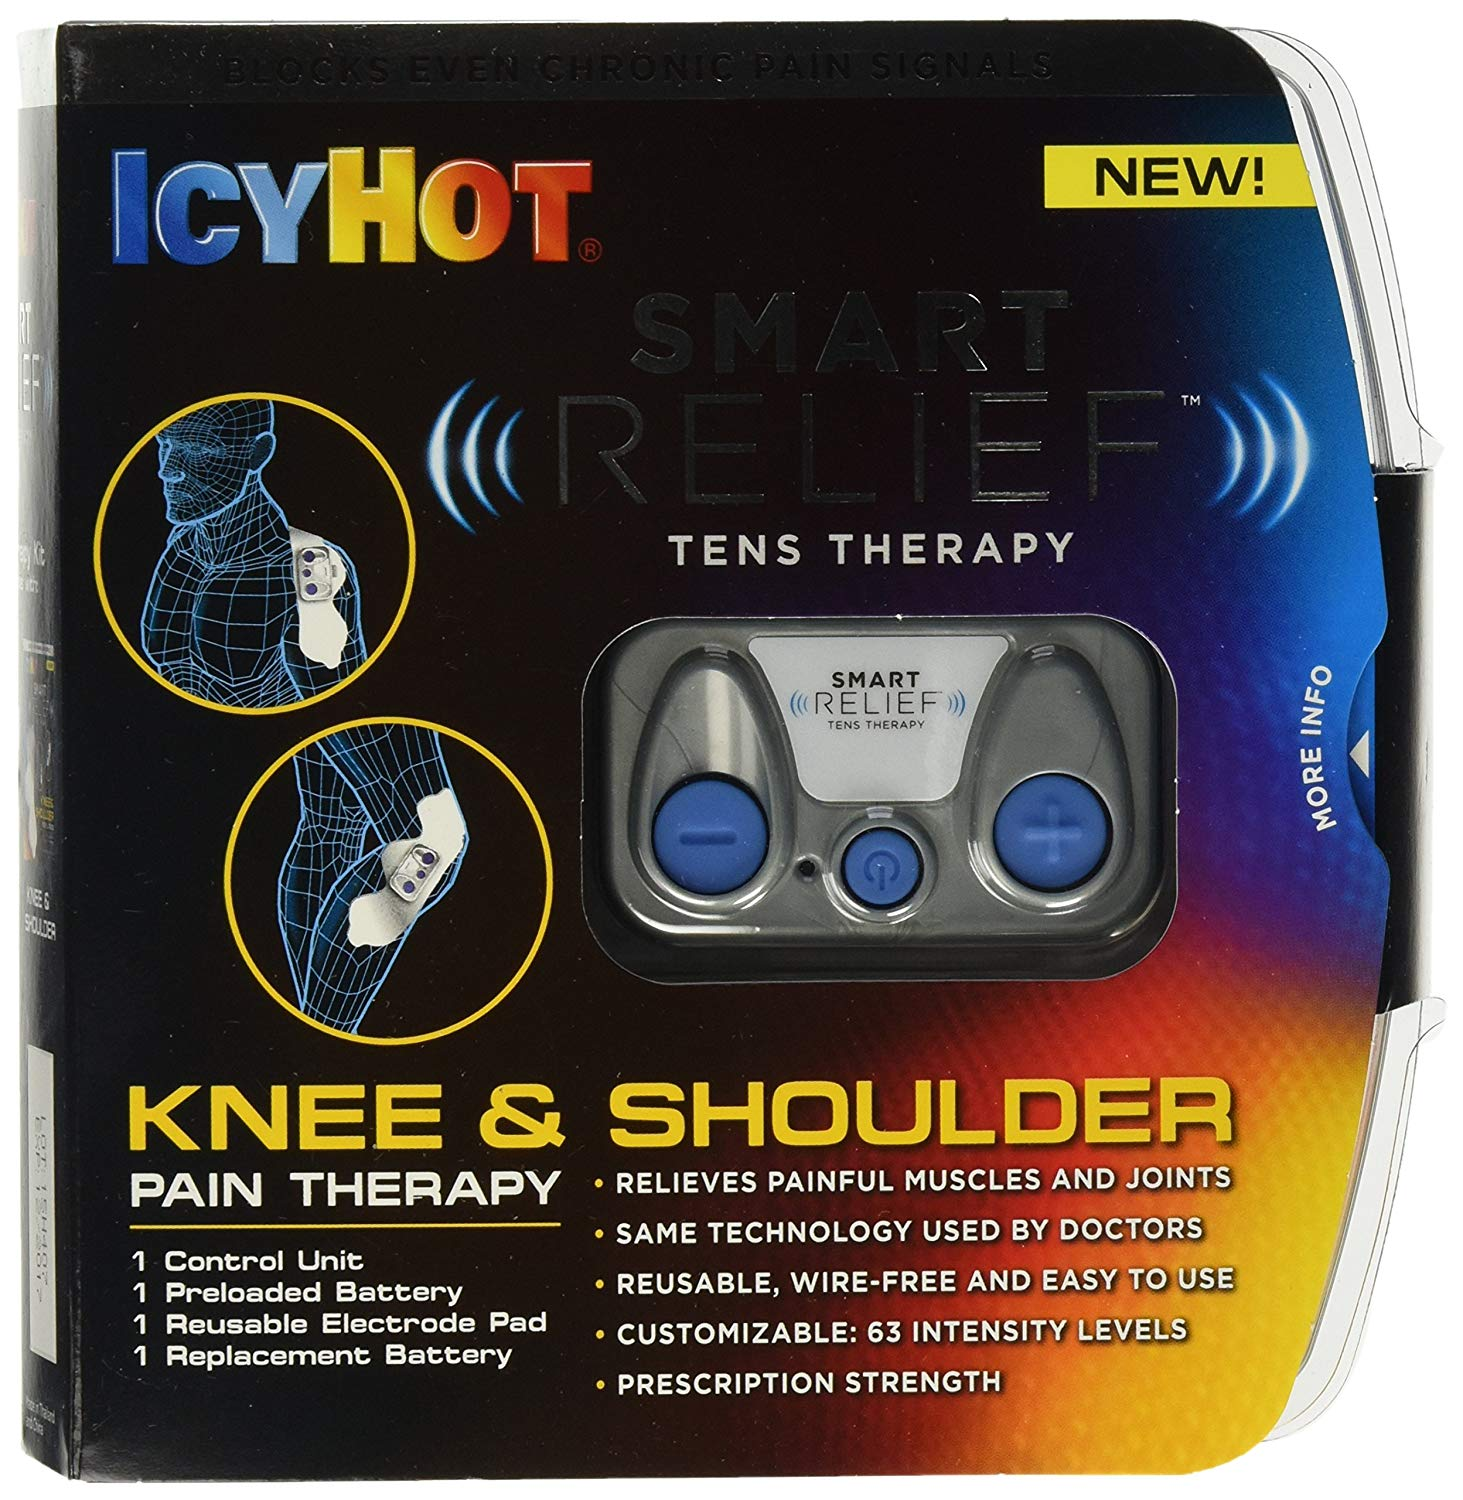 Smart Relief TENS Therapy, Knee and Shoulder Starter Kit, Includes Portable Wire-Free TENS Unit, Battery, Reusable Electrode Pad for Hips and.., By Icy Hot,USA